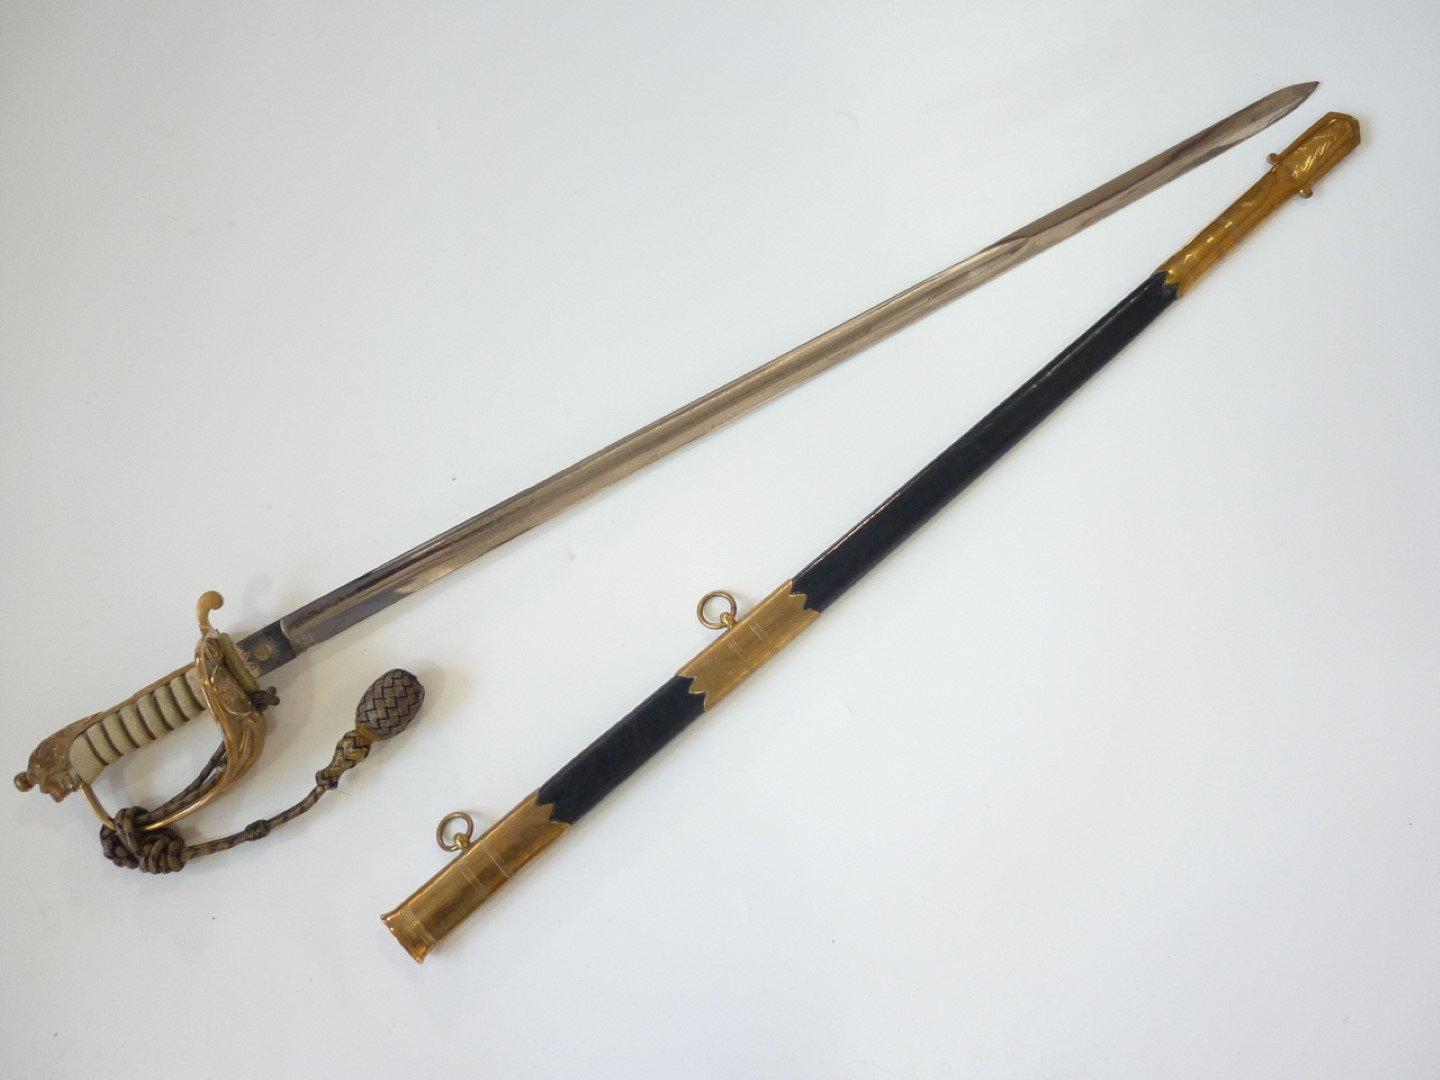 Lot 110 - An early 20th Century Royal Navy Reserve officer's sword, retailed by J R Gaunt, late Edward